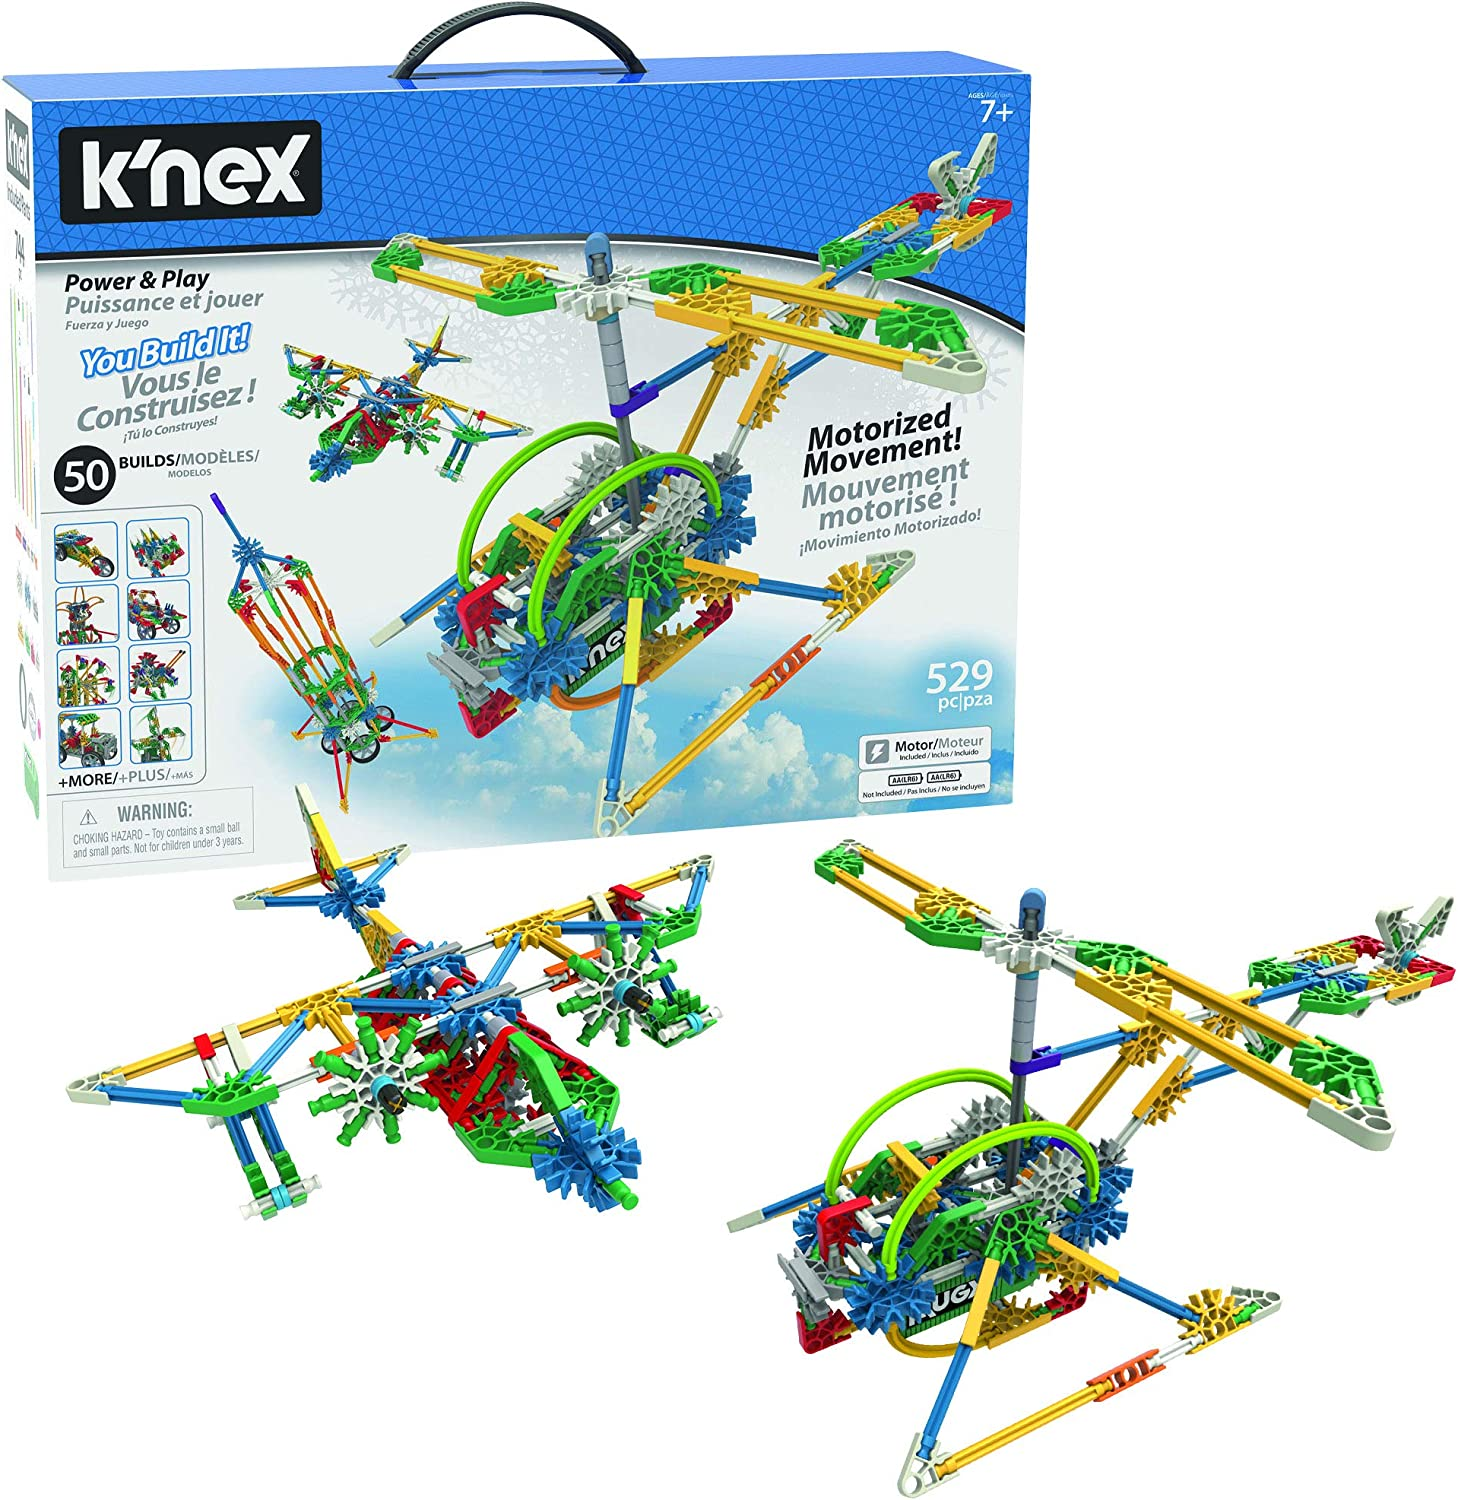 Moving Creations with K'NEX